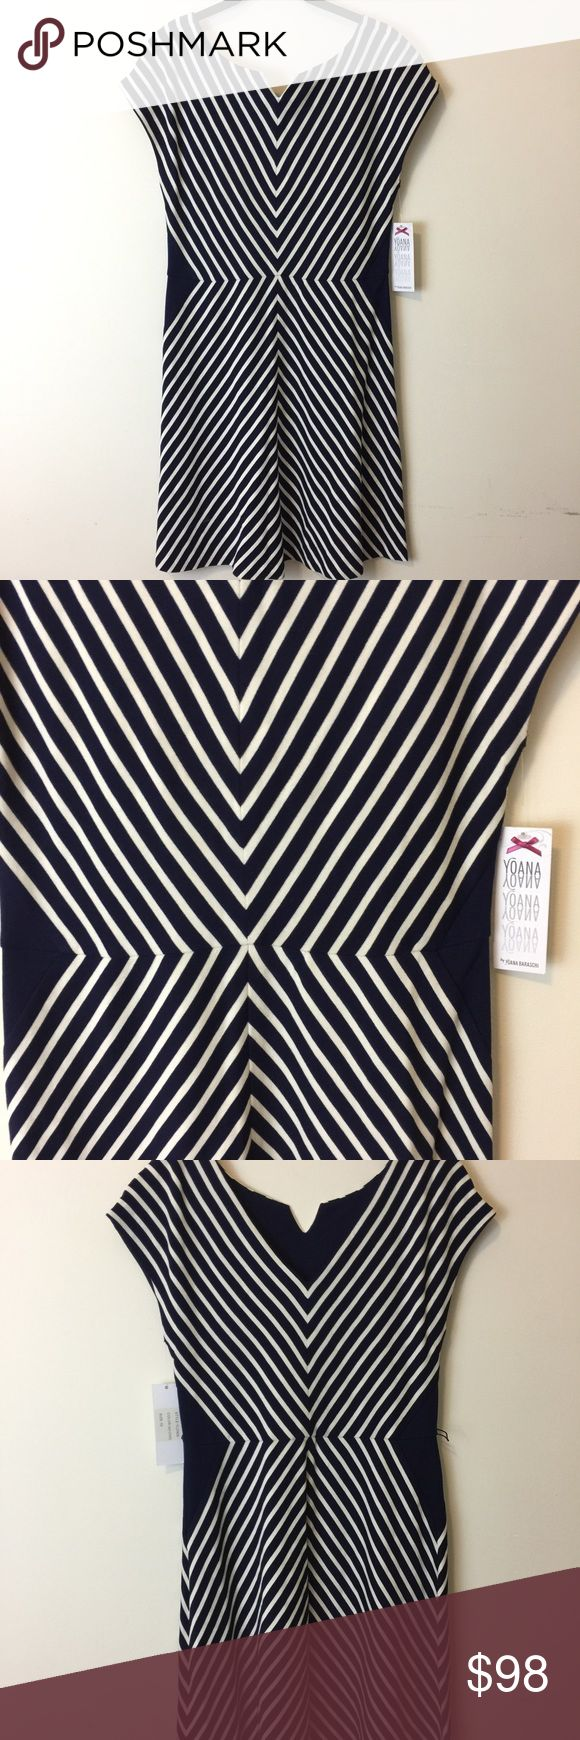 NWT Yoana Baraschi Abstract Navy Chevron Dress Yoana Baraschi Dress new with tags that is gorgeous and flattering. Navy and white stripes! Size 10! Anthropologie Dresses